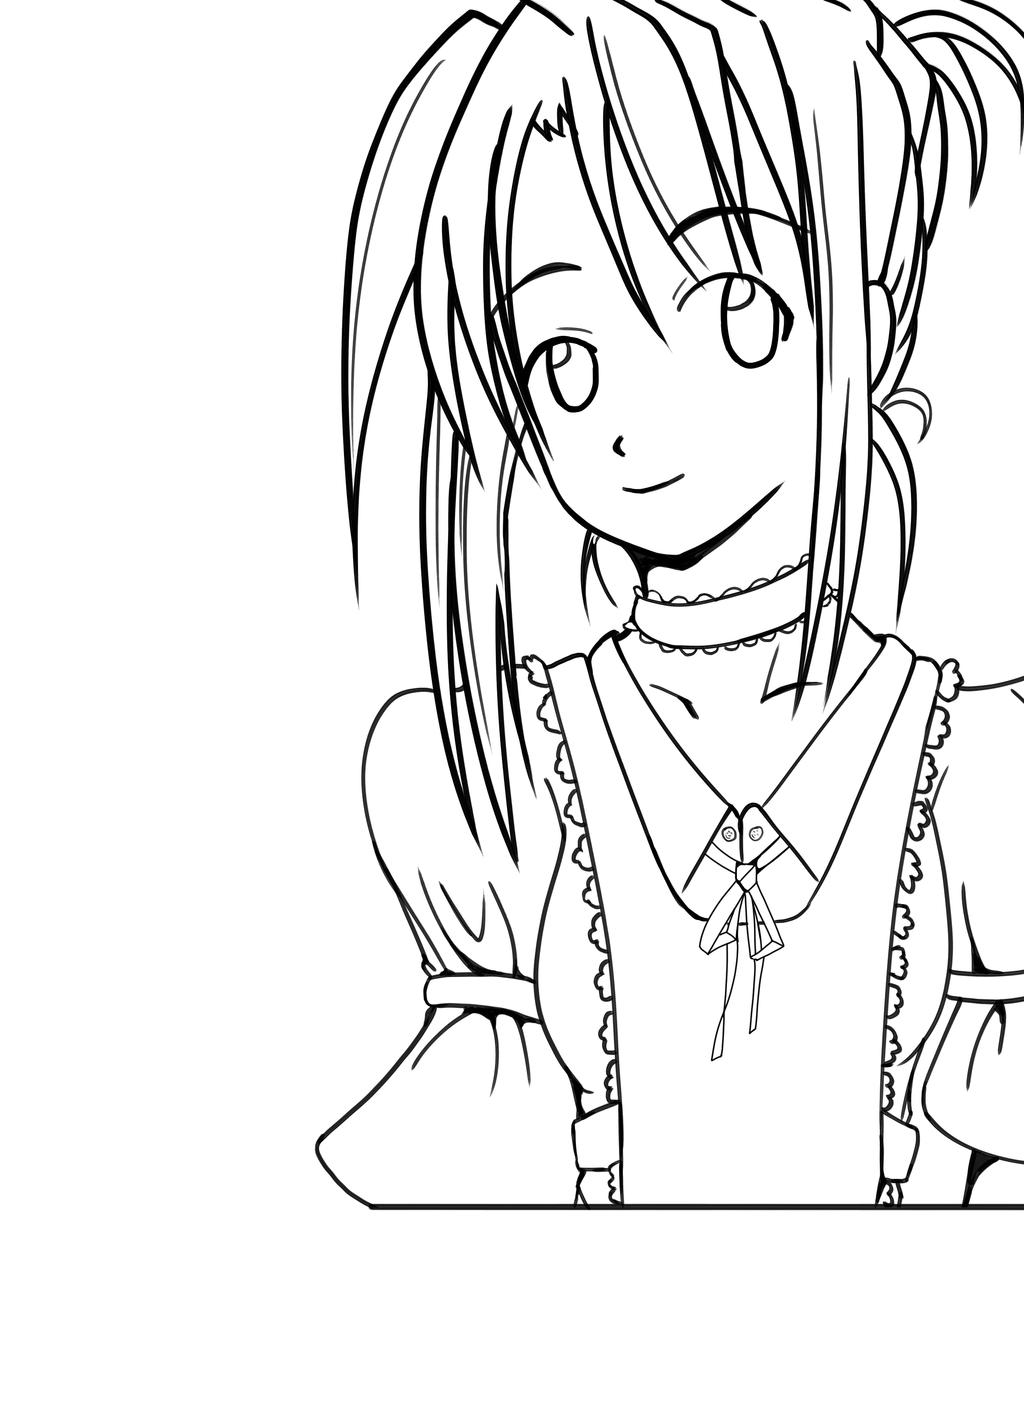 Line Art Practice : Practice line art naru from love hina by jamesrreiman on